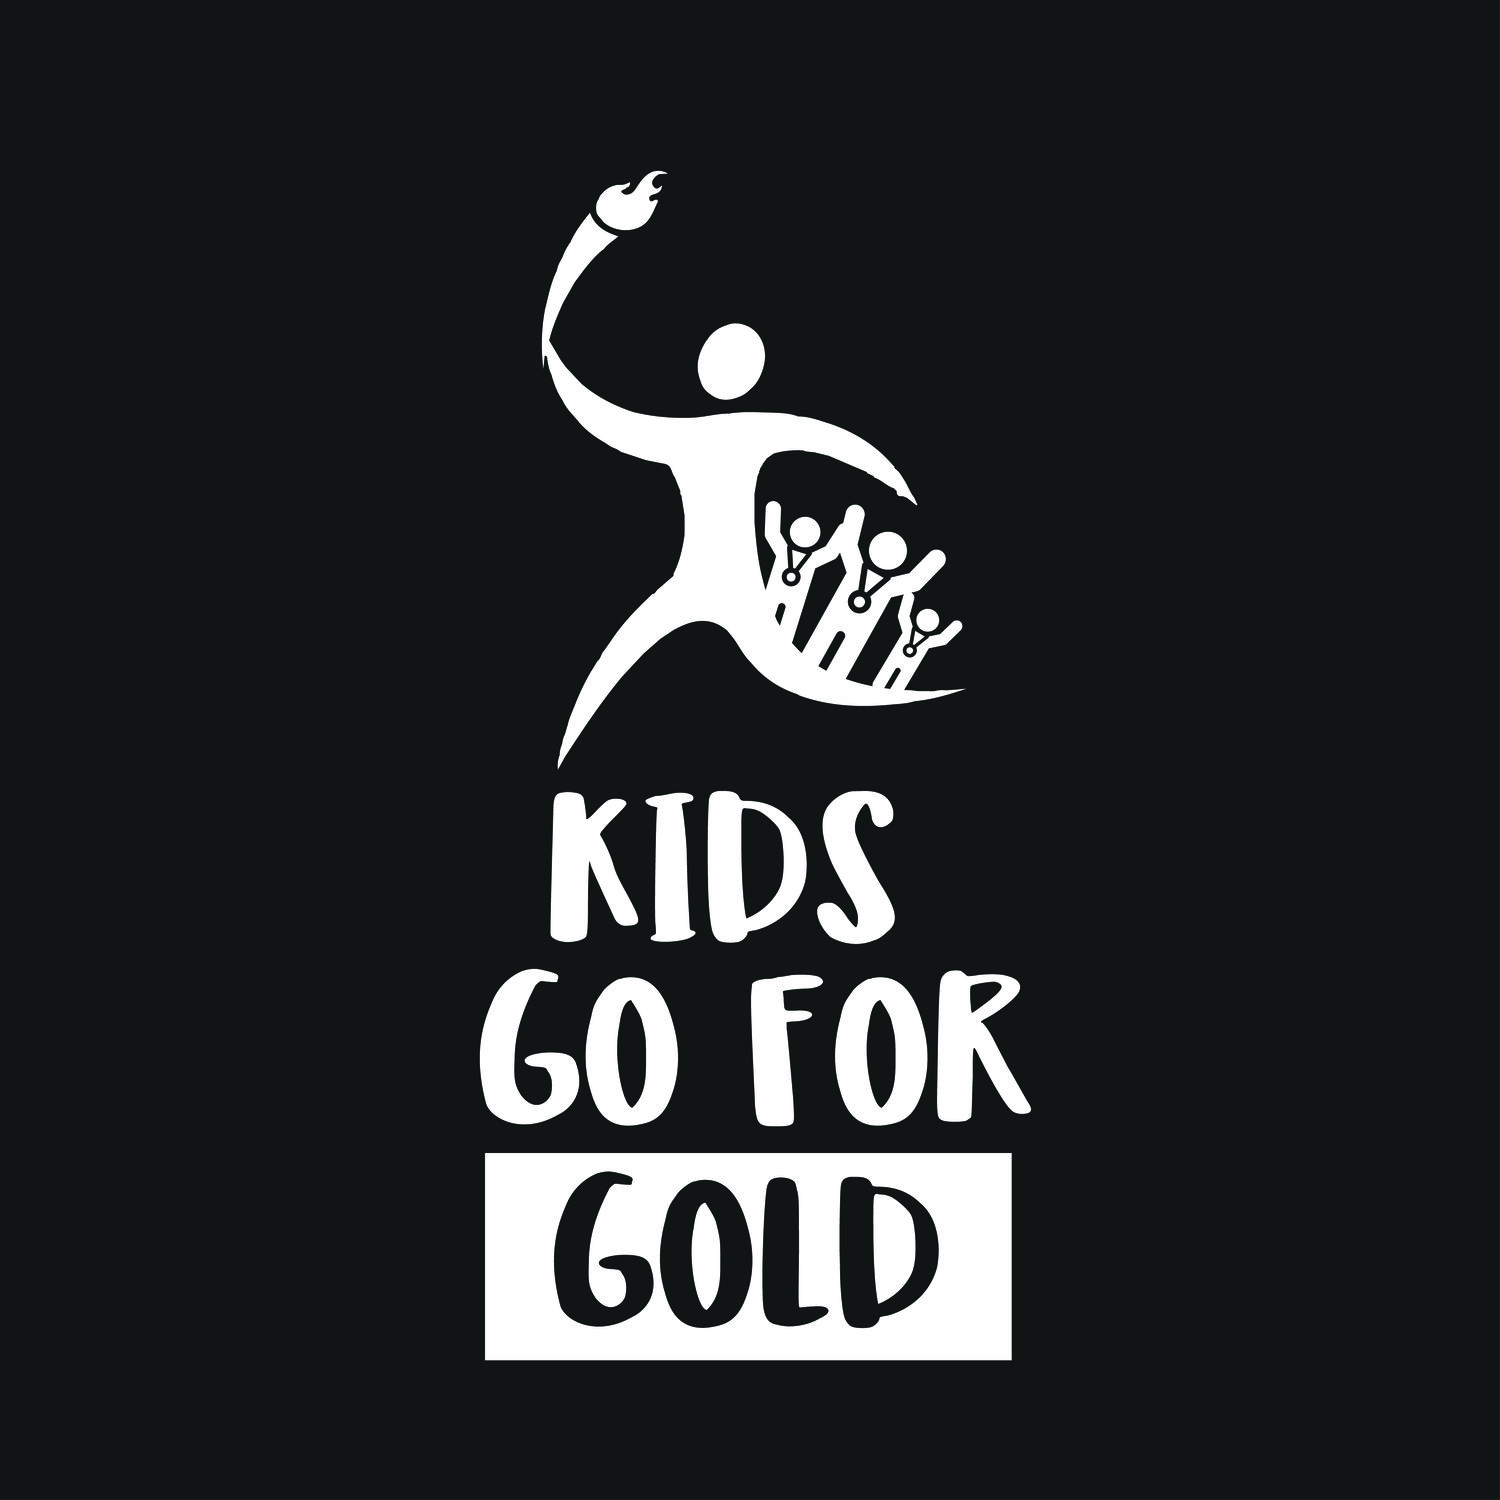 Kids Go For Gold